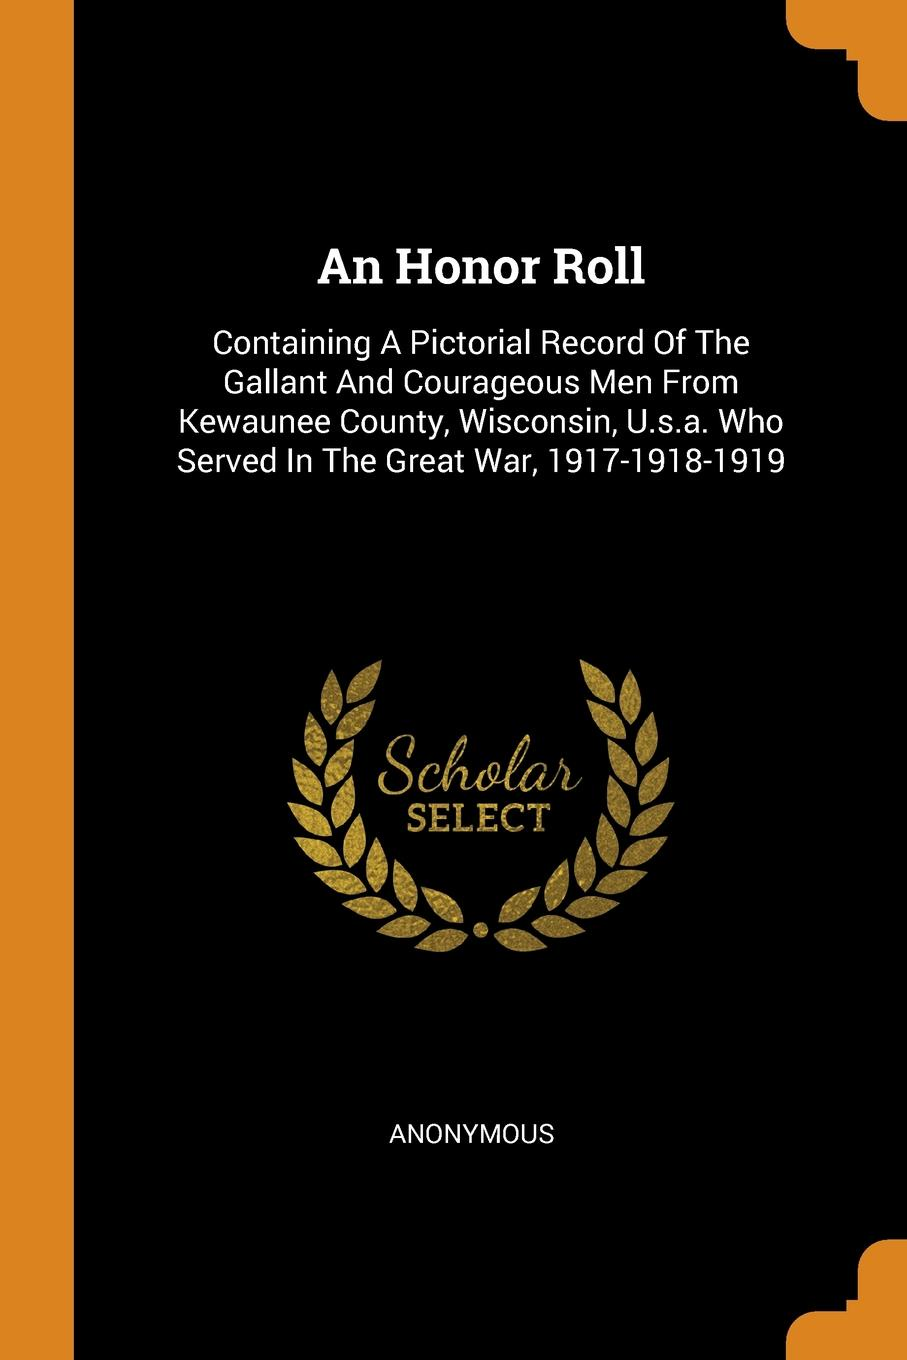 M. l'abbé Trochon An Honor Roll. Containing A Pictorial Record Of The Gallant And Courageous Men From Kewaunee County, Wisconsin, U.s.a. Who Served In The Great War, 1917-1918-1919